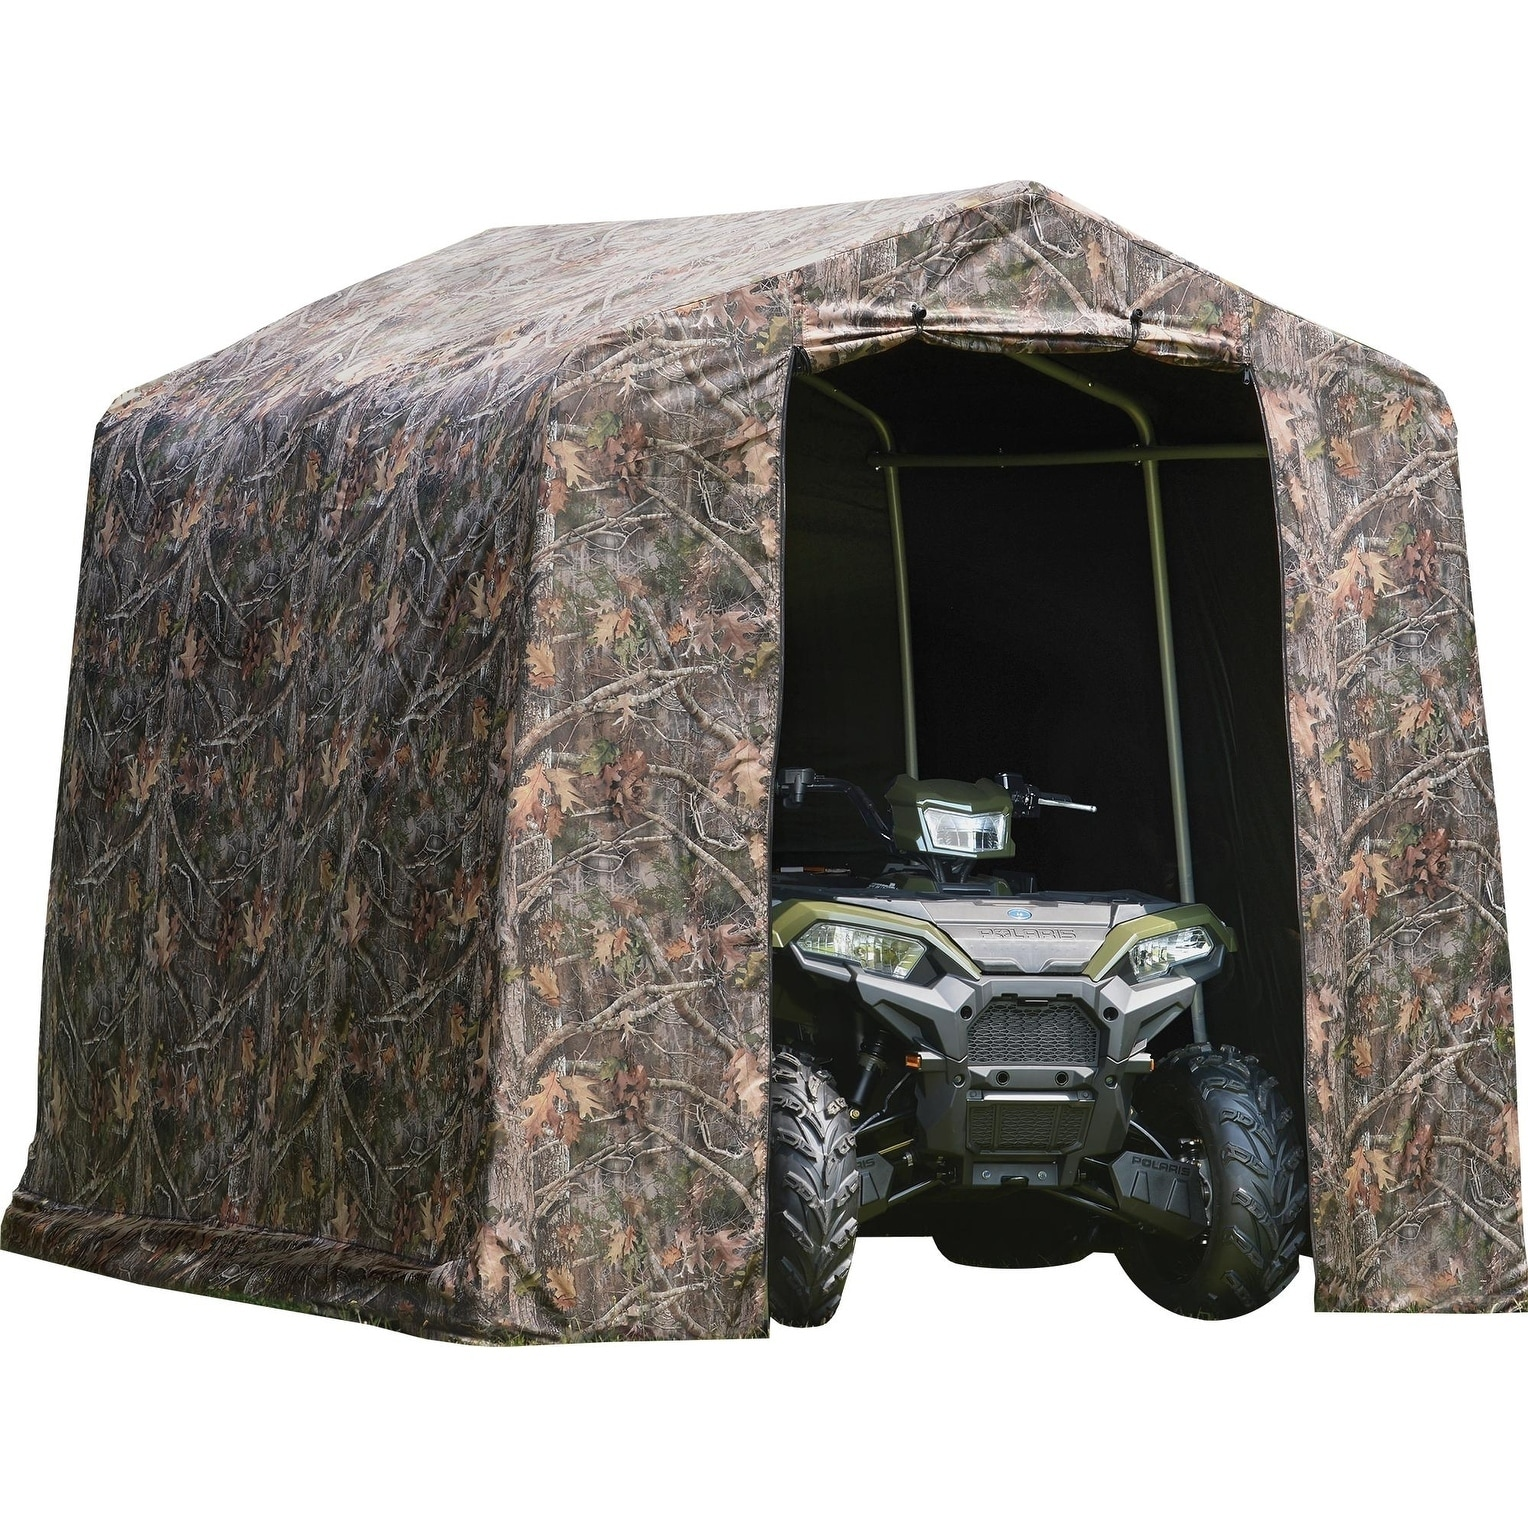 shade ap in shelter outdoor atv temporary garage canopy best replacement box shelterlogic max a idea storage tractor have instant sun supply canvas p using sheds